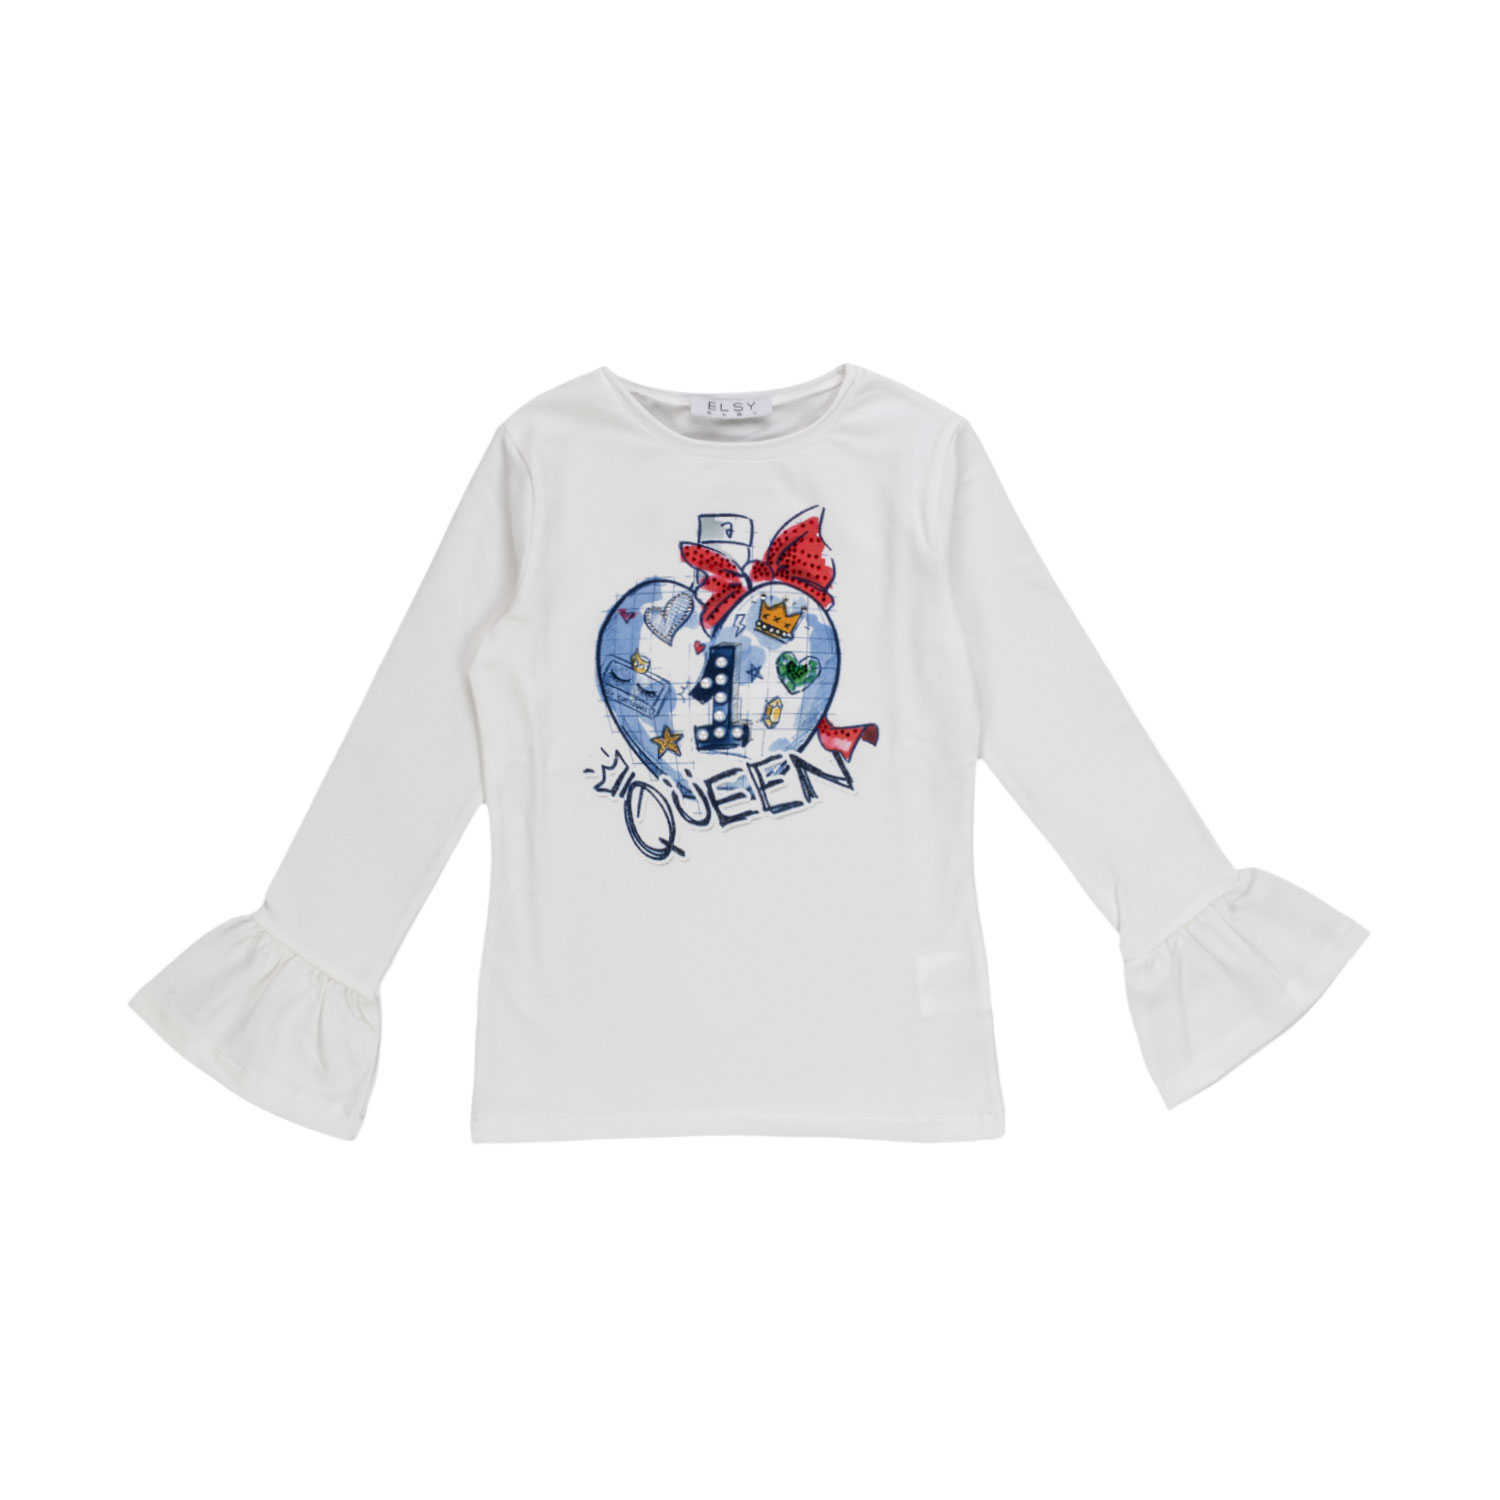 3cf95581e Elsy - White Top With Queen Design For Girls - annameglio.com shop ...